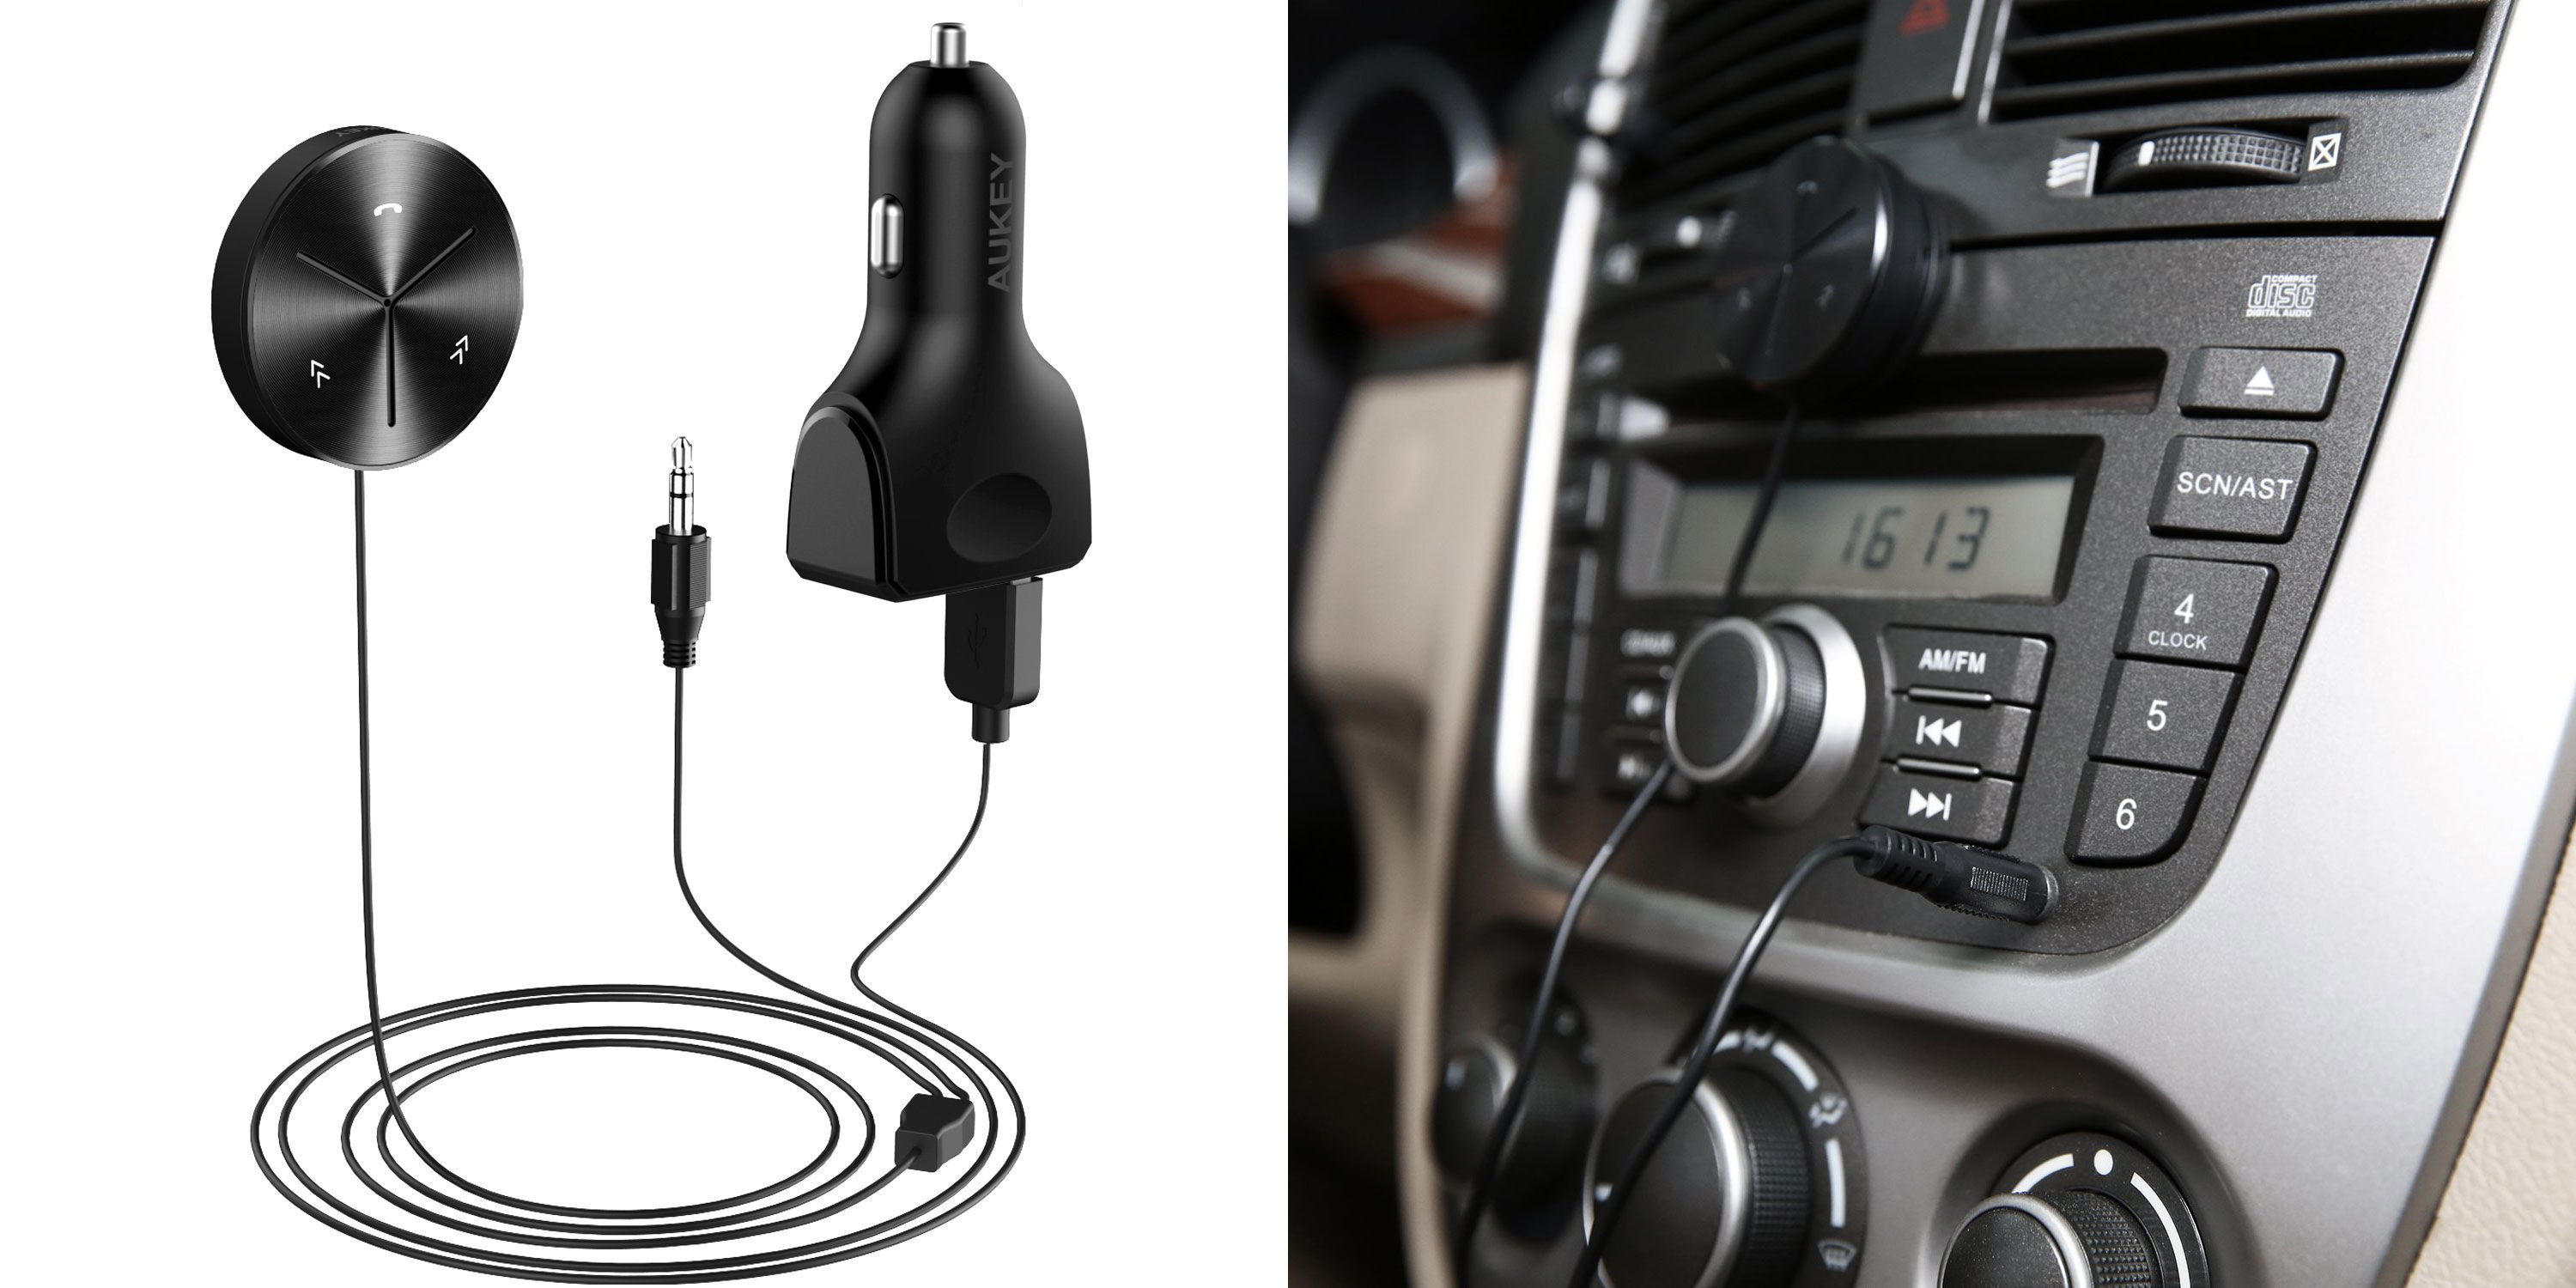 BR-C8 aggiunge l'audio Bluetooth all'autoradio